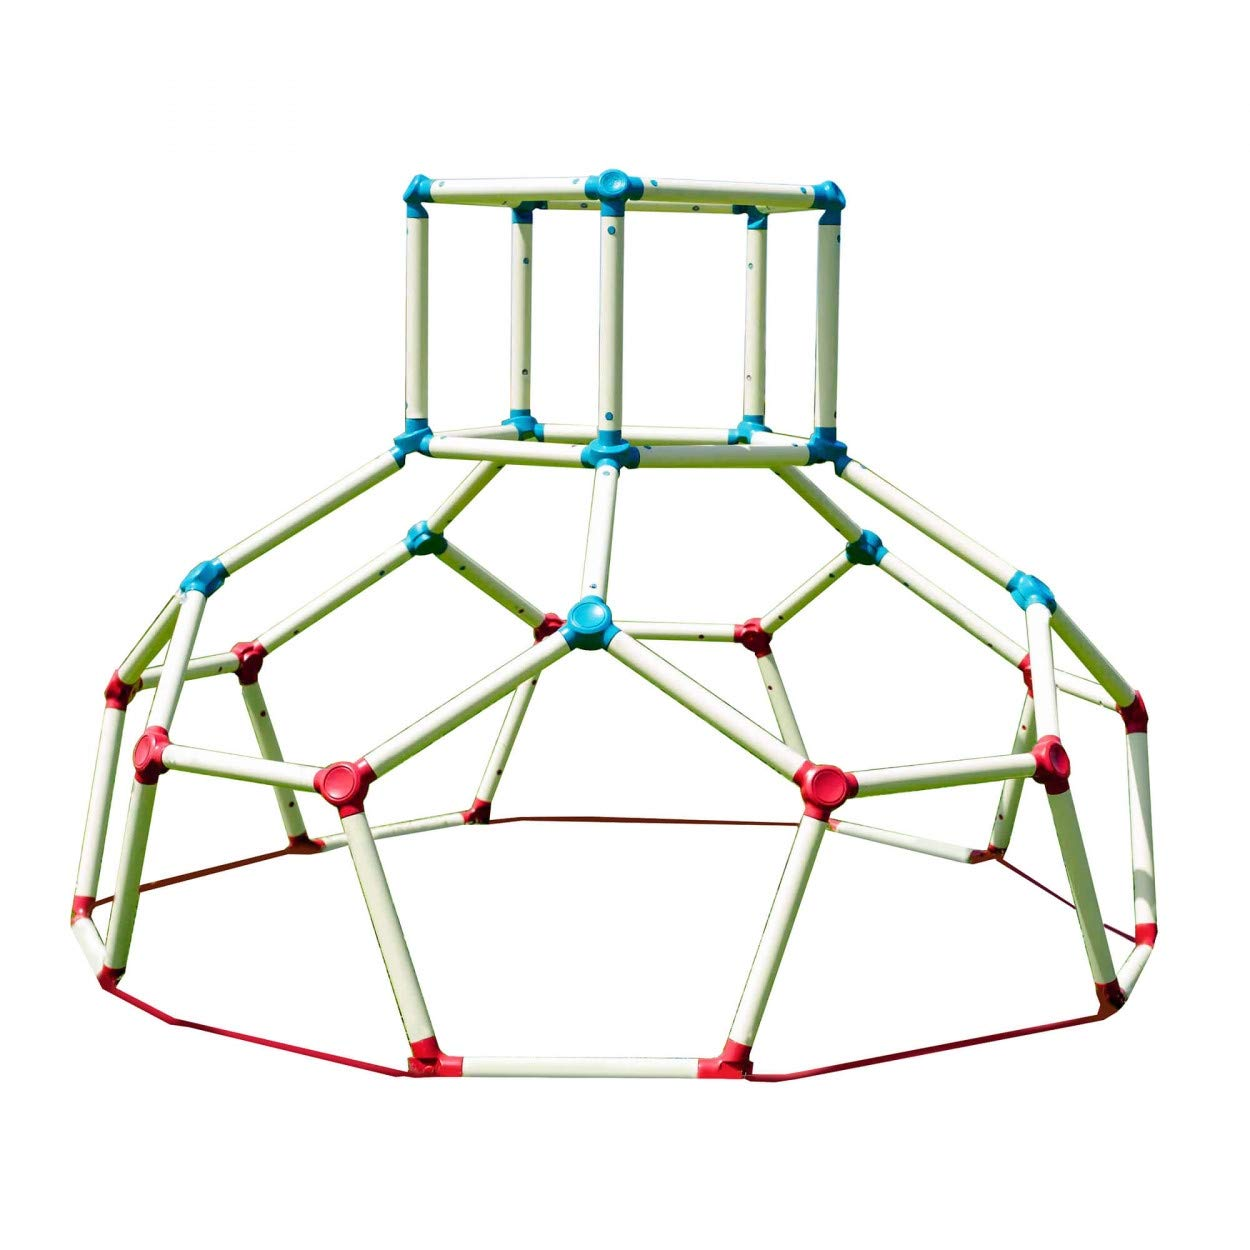 Dome Climber & APP Jungle Gym Monkey Bar Climbing Frame Structure by Plum